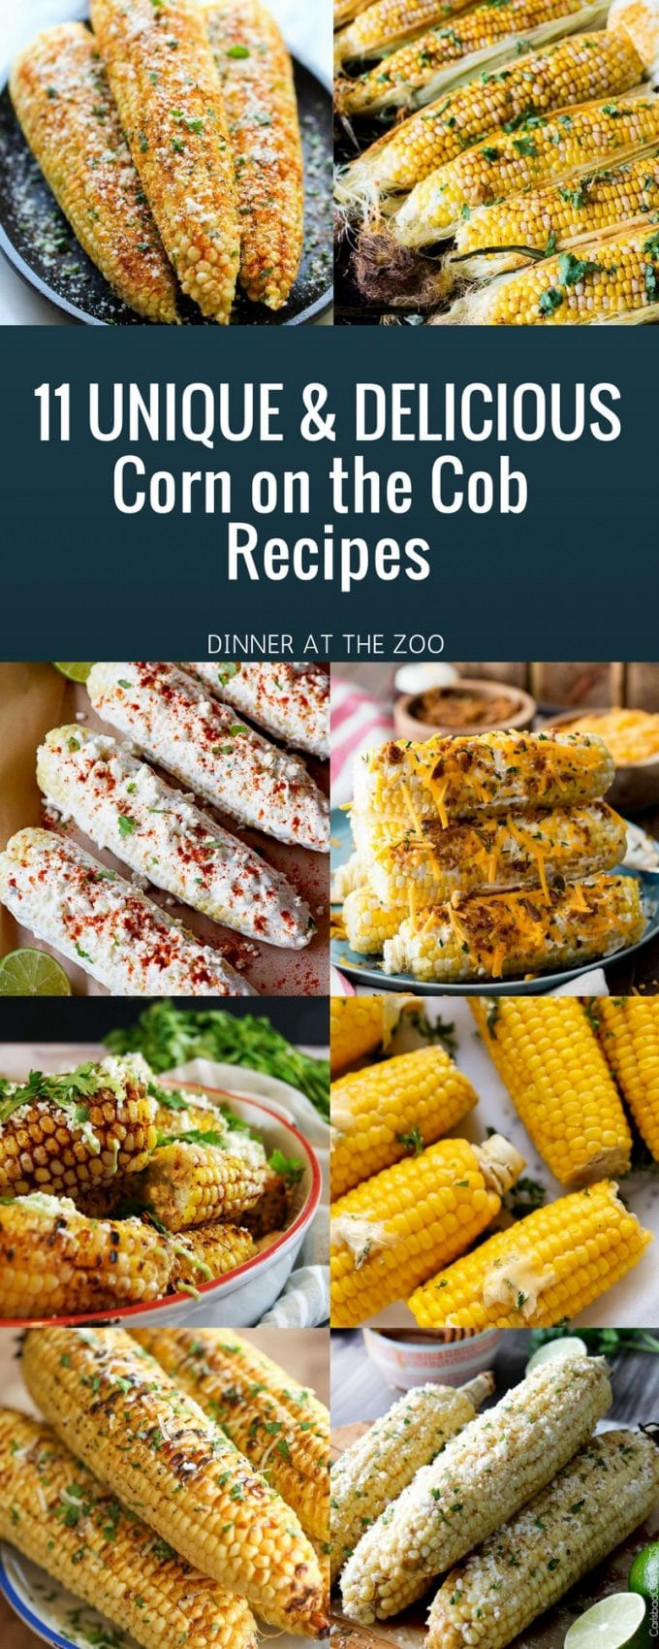 11 Corn on the Cob Recipes - Dinner at the Zoo - unique recipes dinner